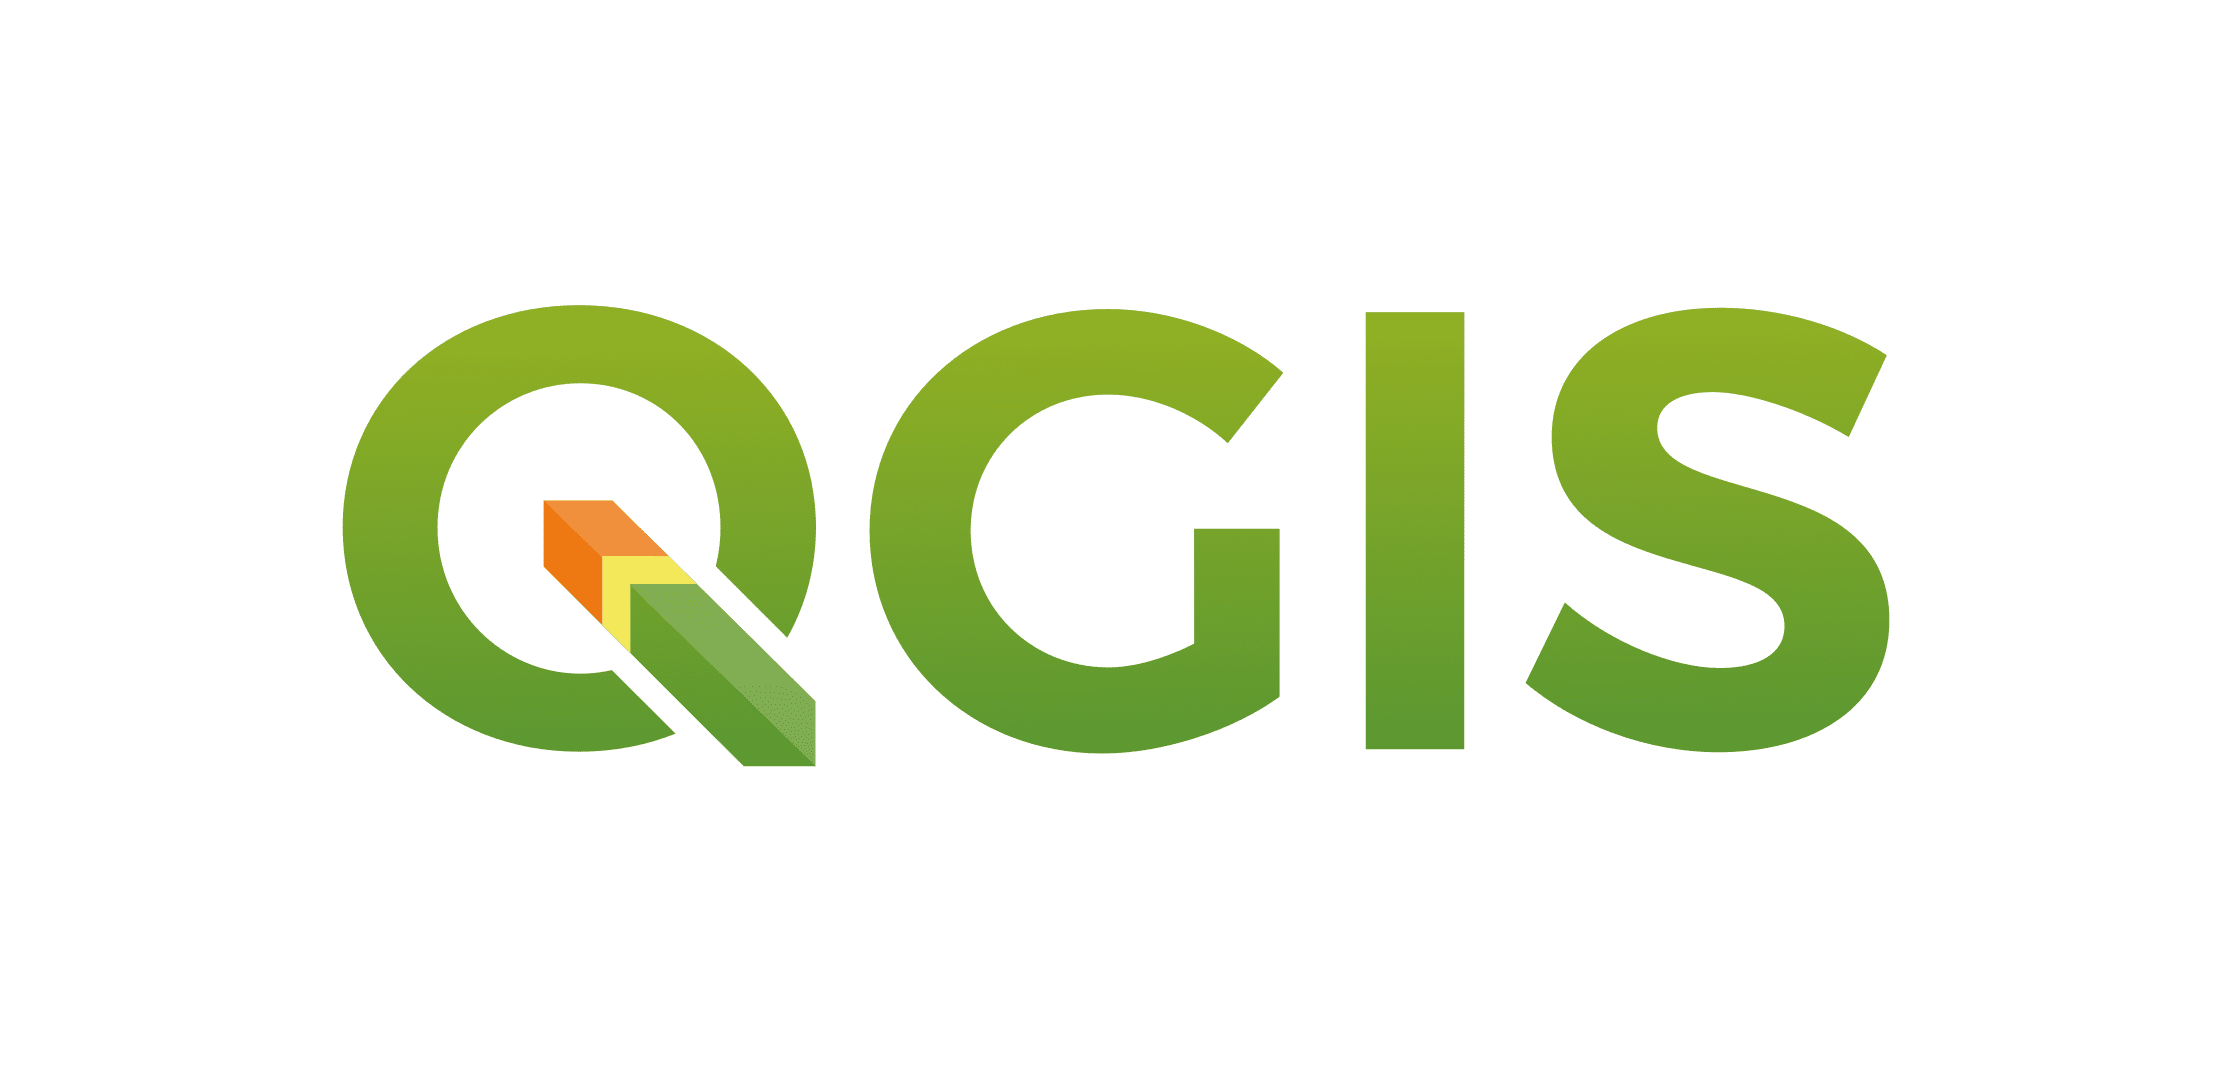 QGIS - QTIBIA ENGINEERING